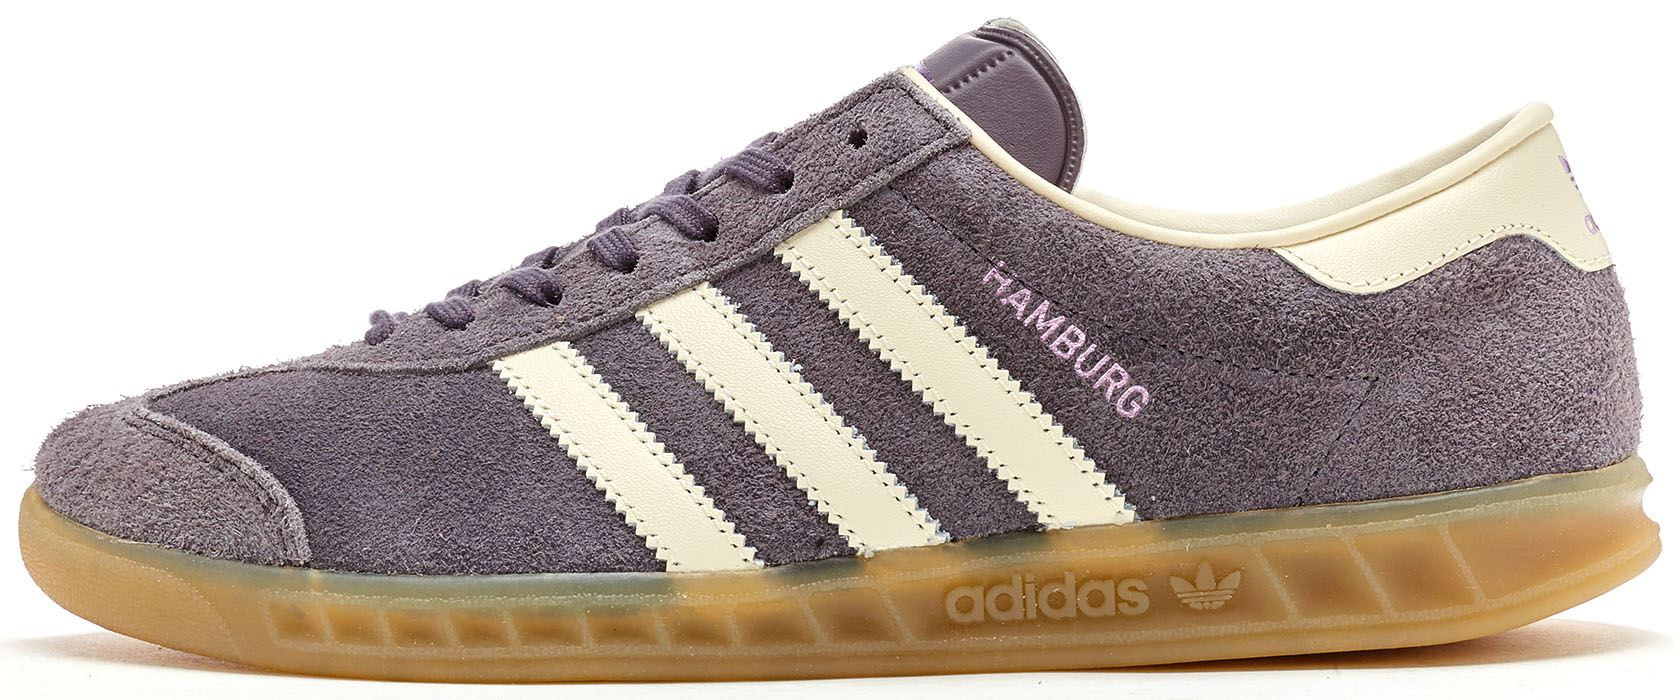 Adidas Hamburg Women Trainers in Trace Grey & Off White BB5109